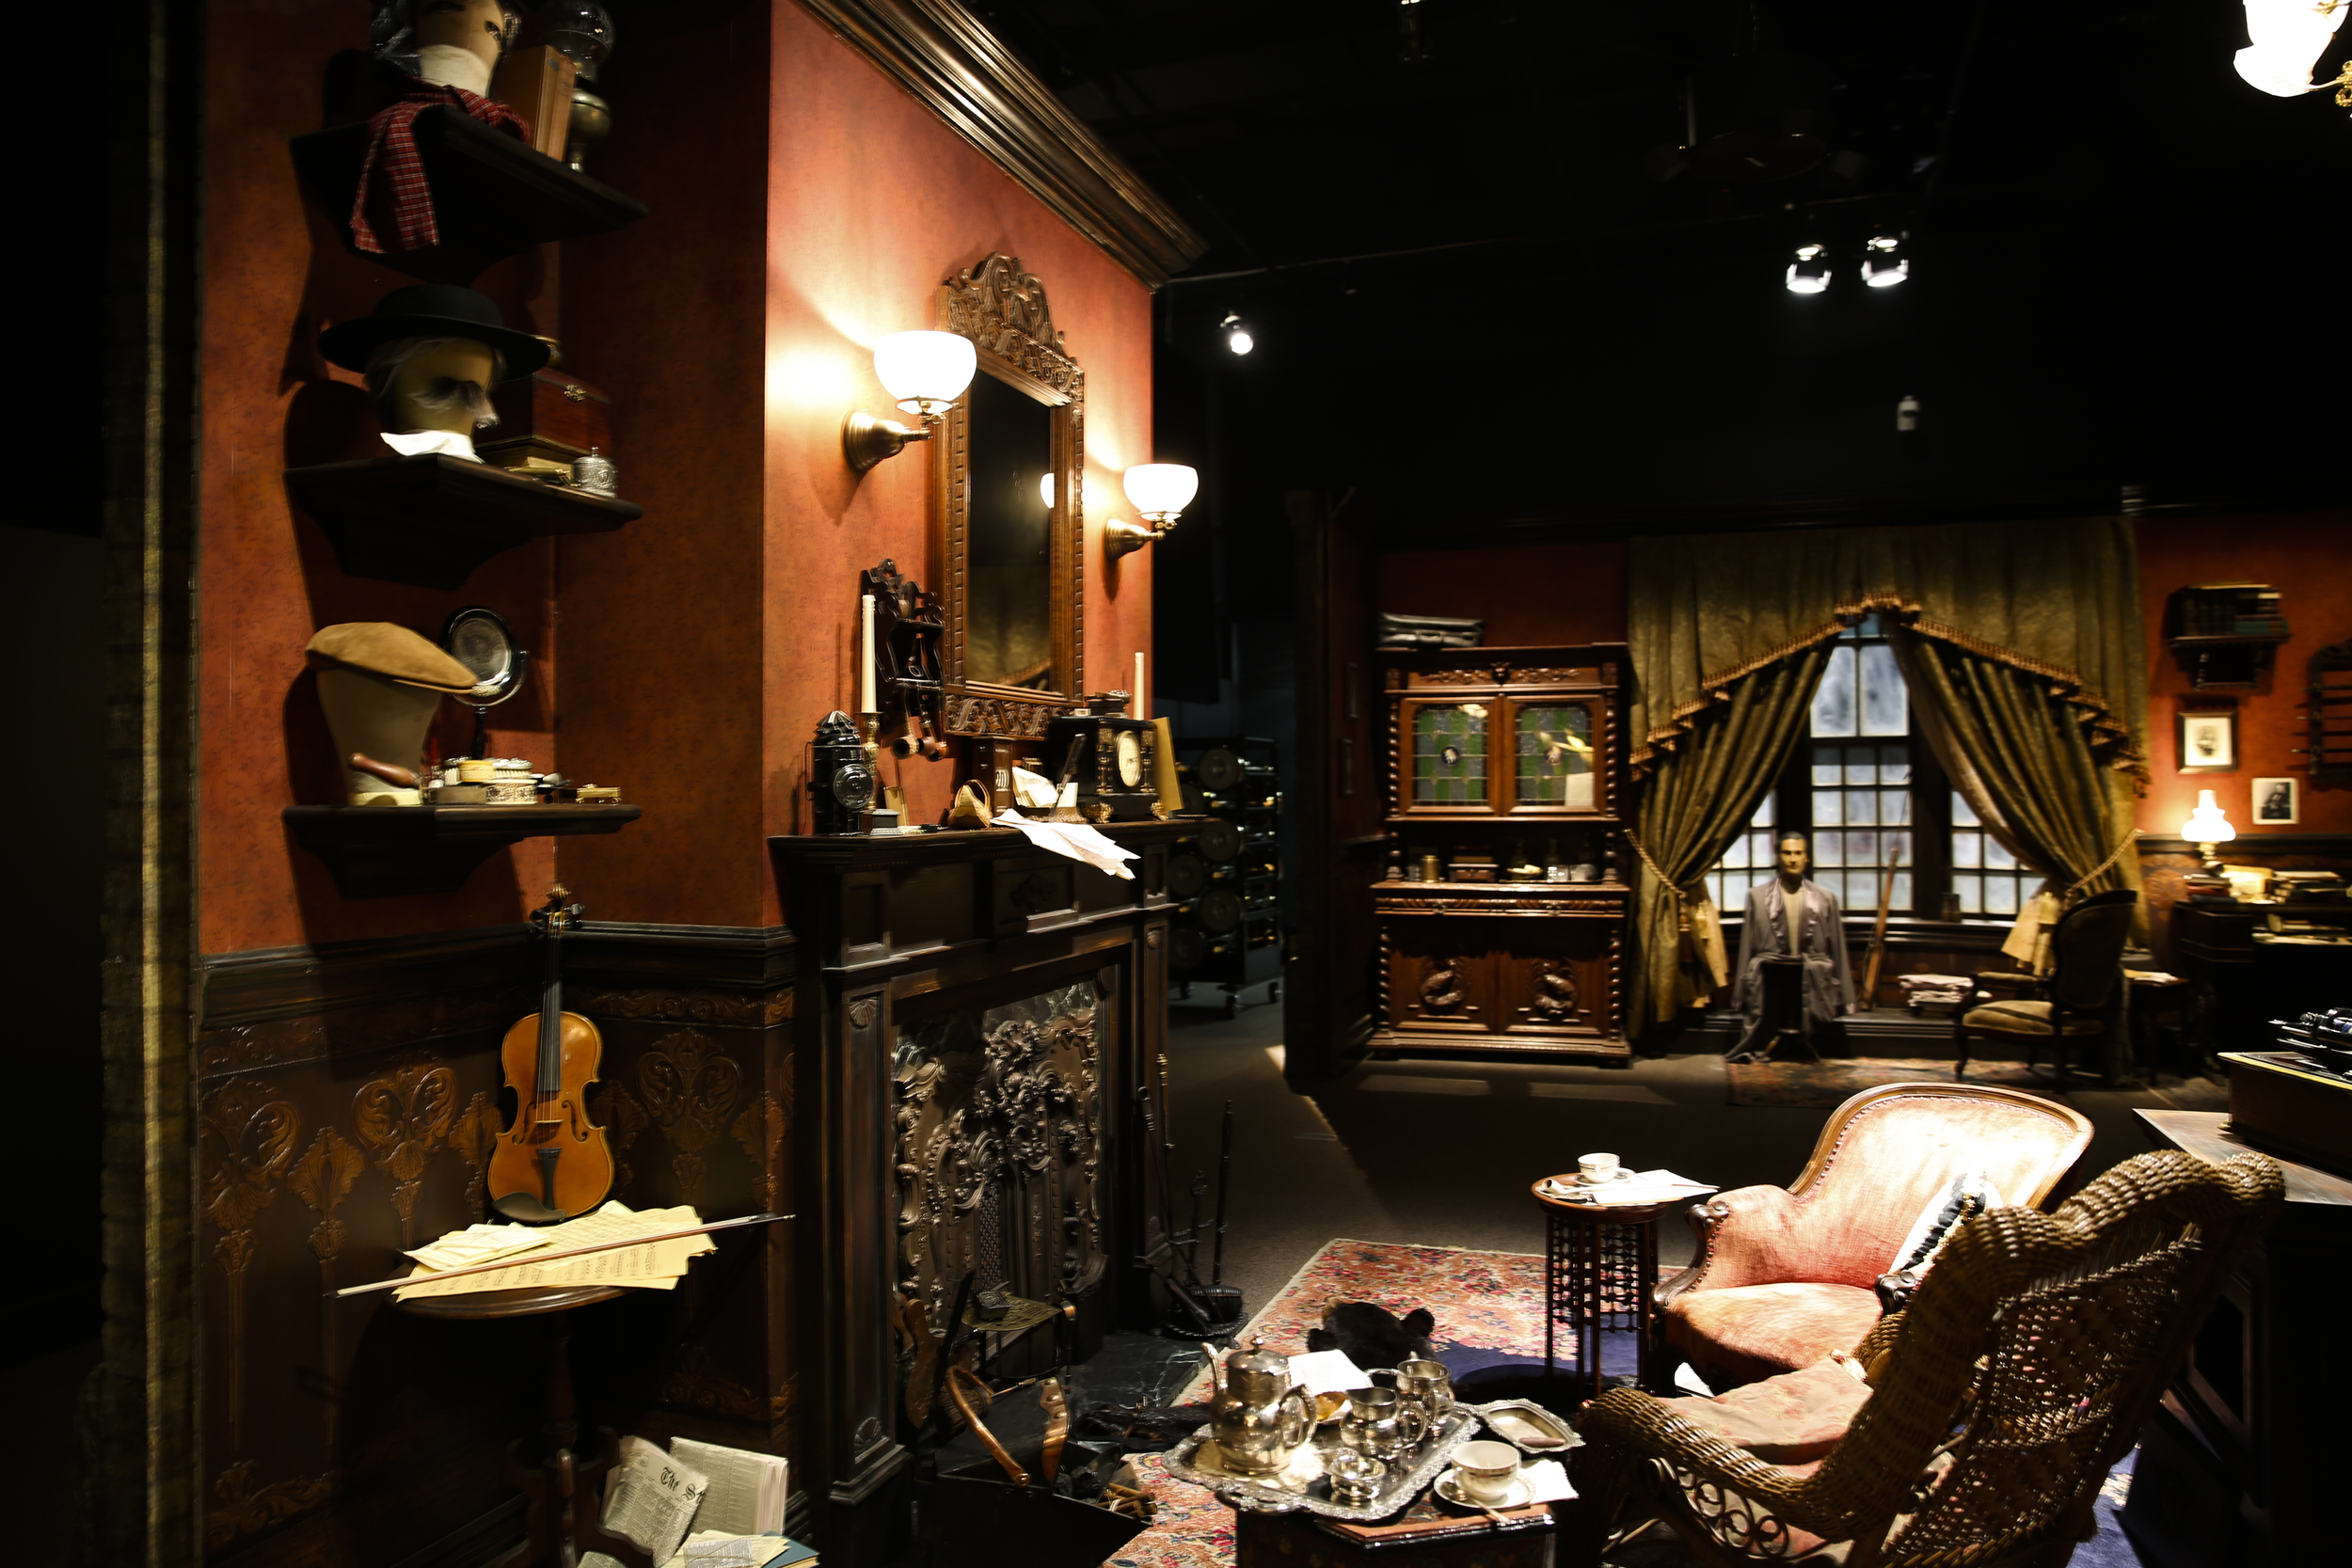 The International Exhibition of Sherlock Holmes